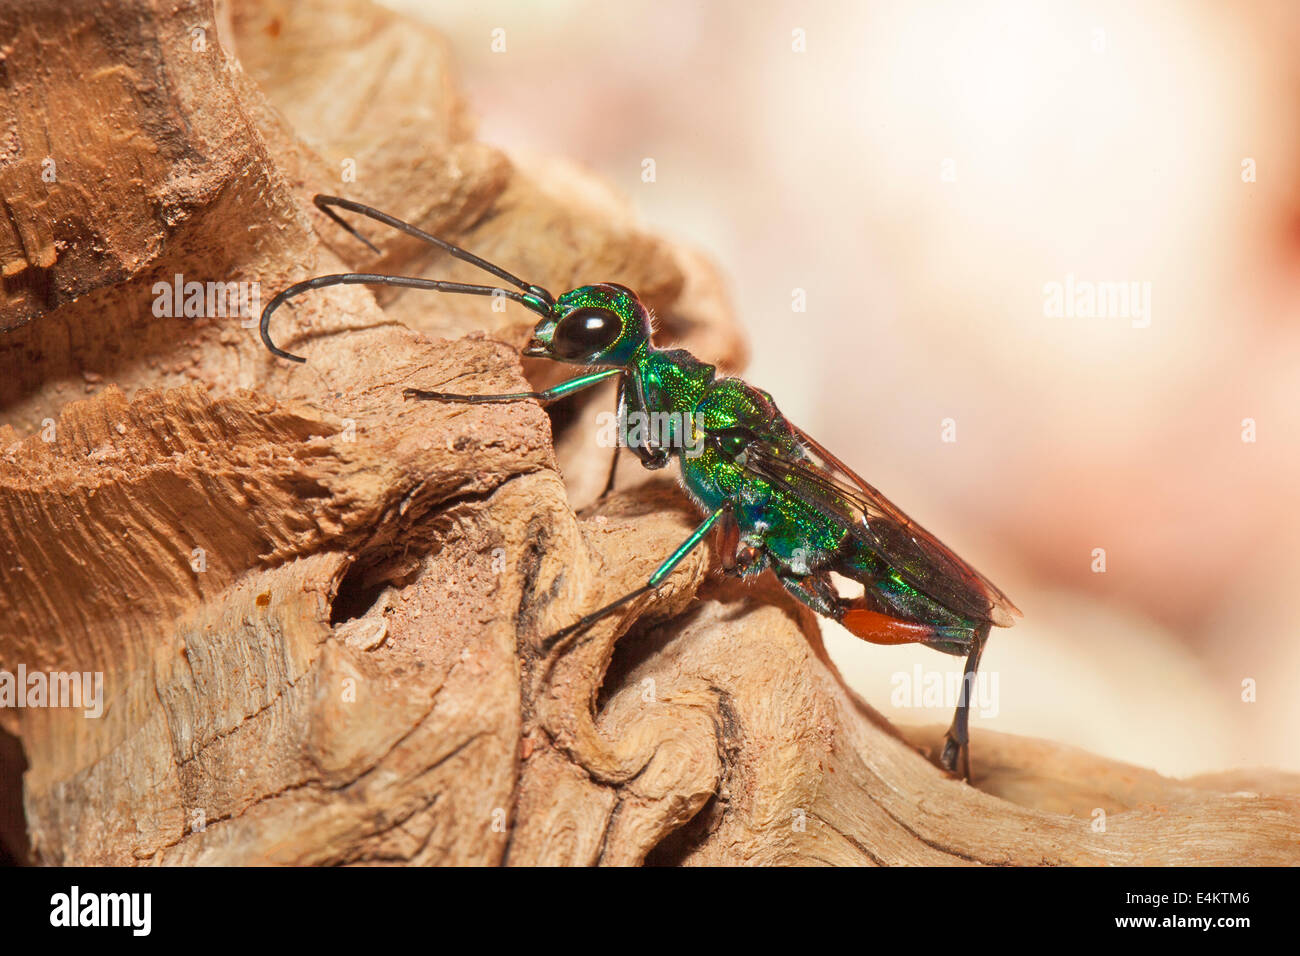 Jewel or Emerald Cockroach Wasp - Stock Image